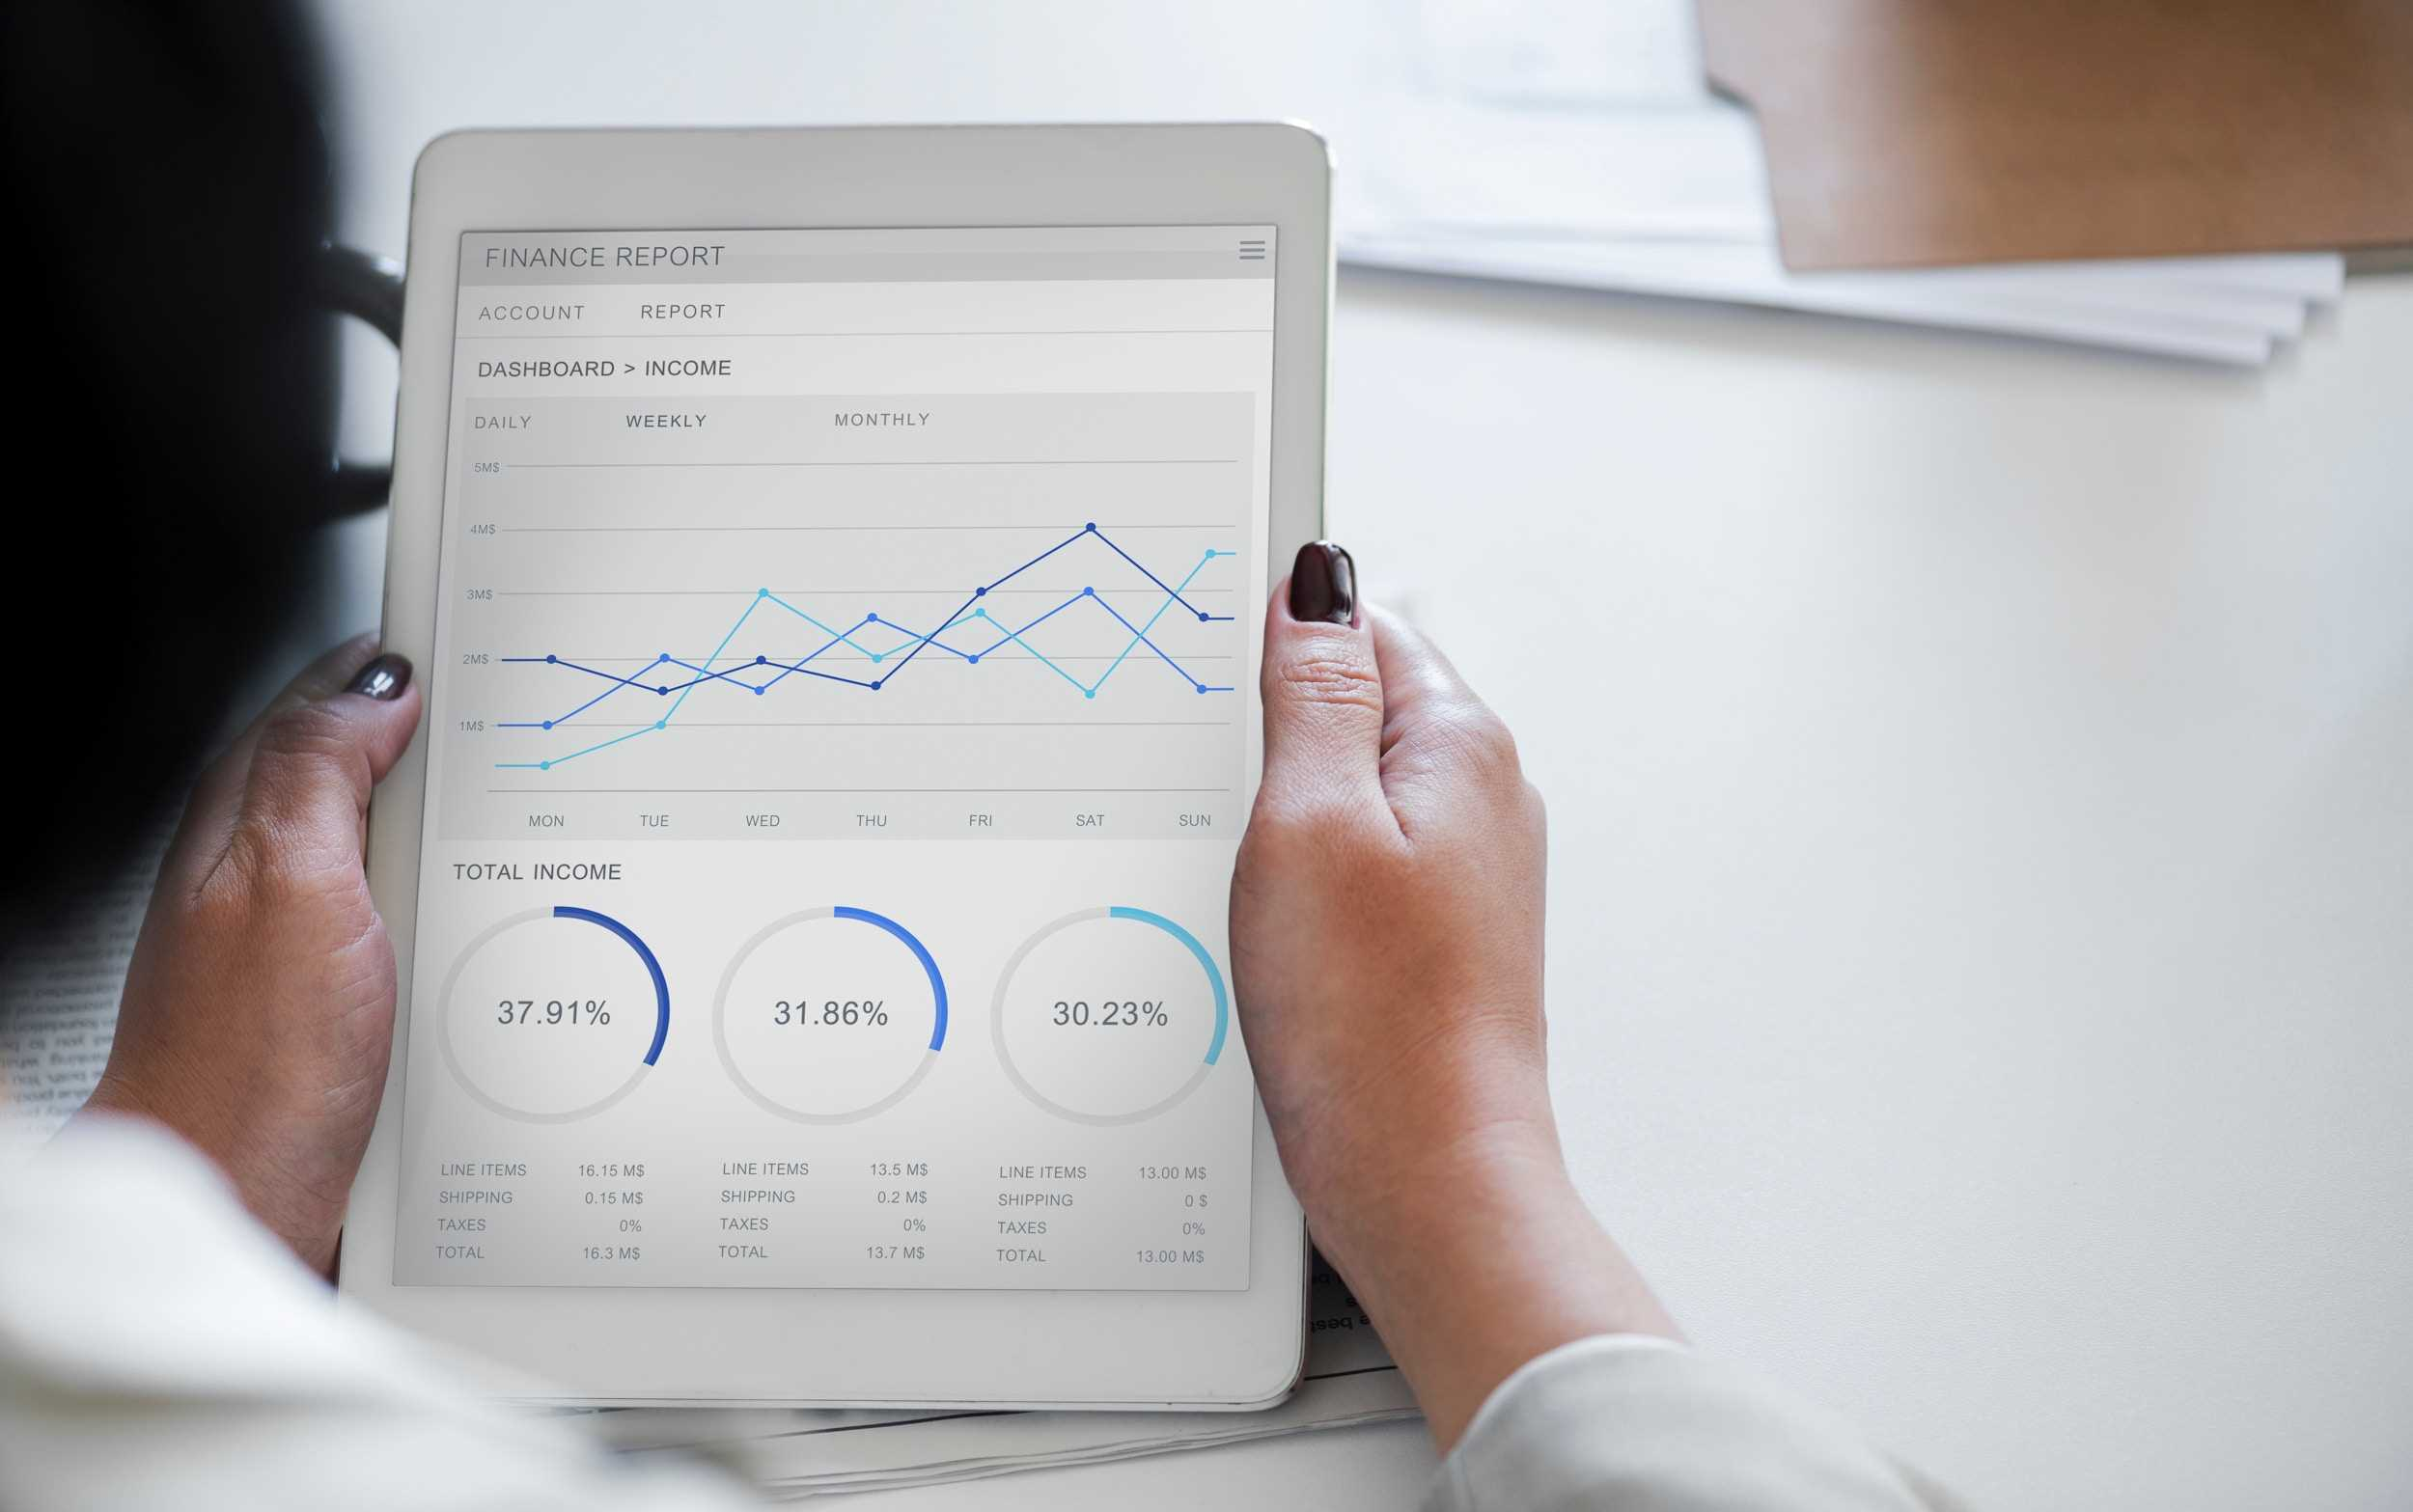 Why Data Analytics Can Help Drive Sales for Business